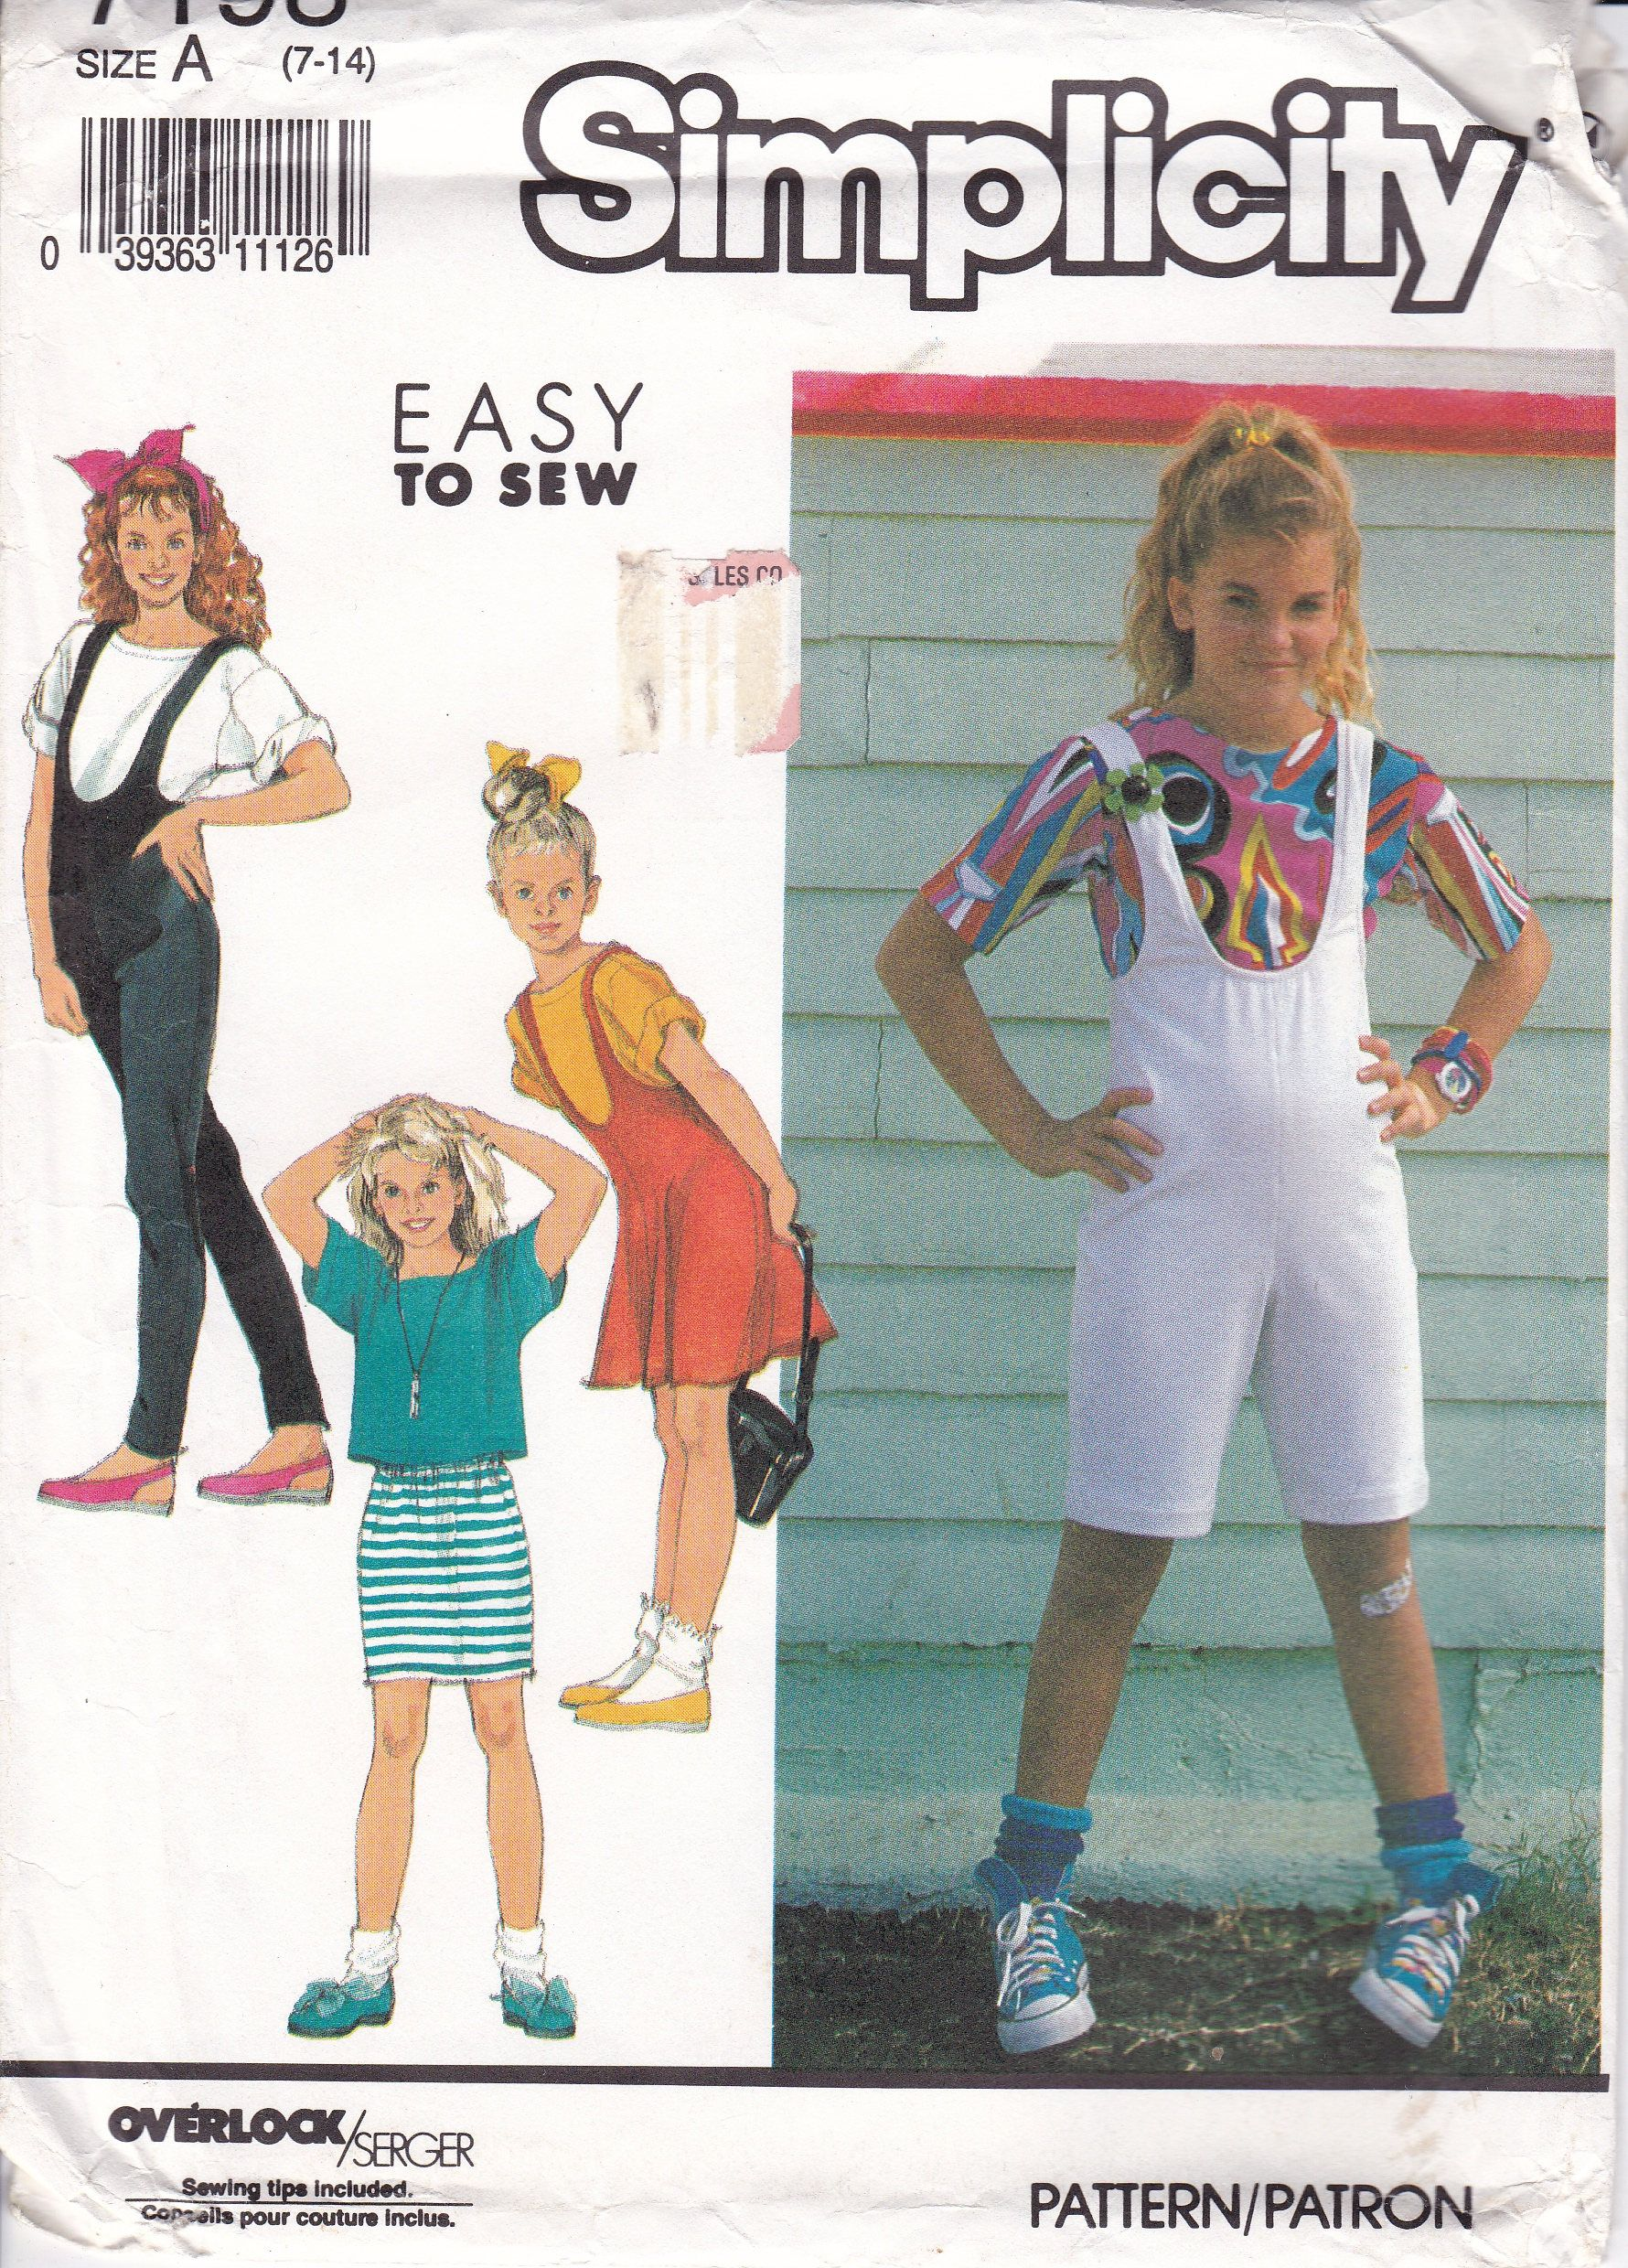 Vogue 7849 misses cat suit stirrup unitards bodysuit leggings vogue 7849 misses cat suit stirrup unitards bodysuit leggings pattern easy womens vintage sewing size 12 14 16 bust 34 36 38 or 6 8 10 uncut unitards jeuxipadfo Gallery